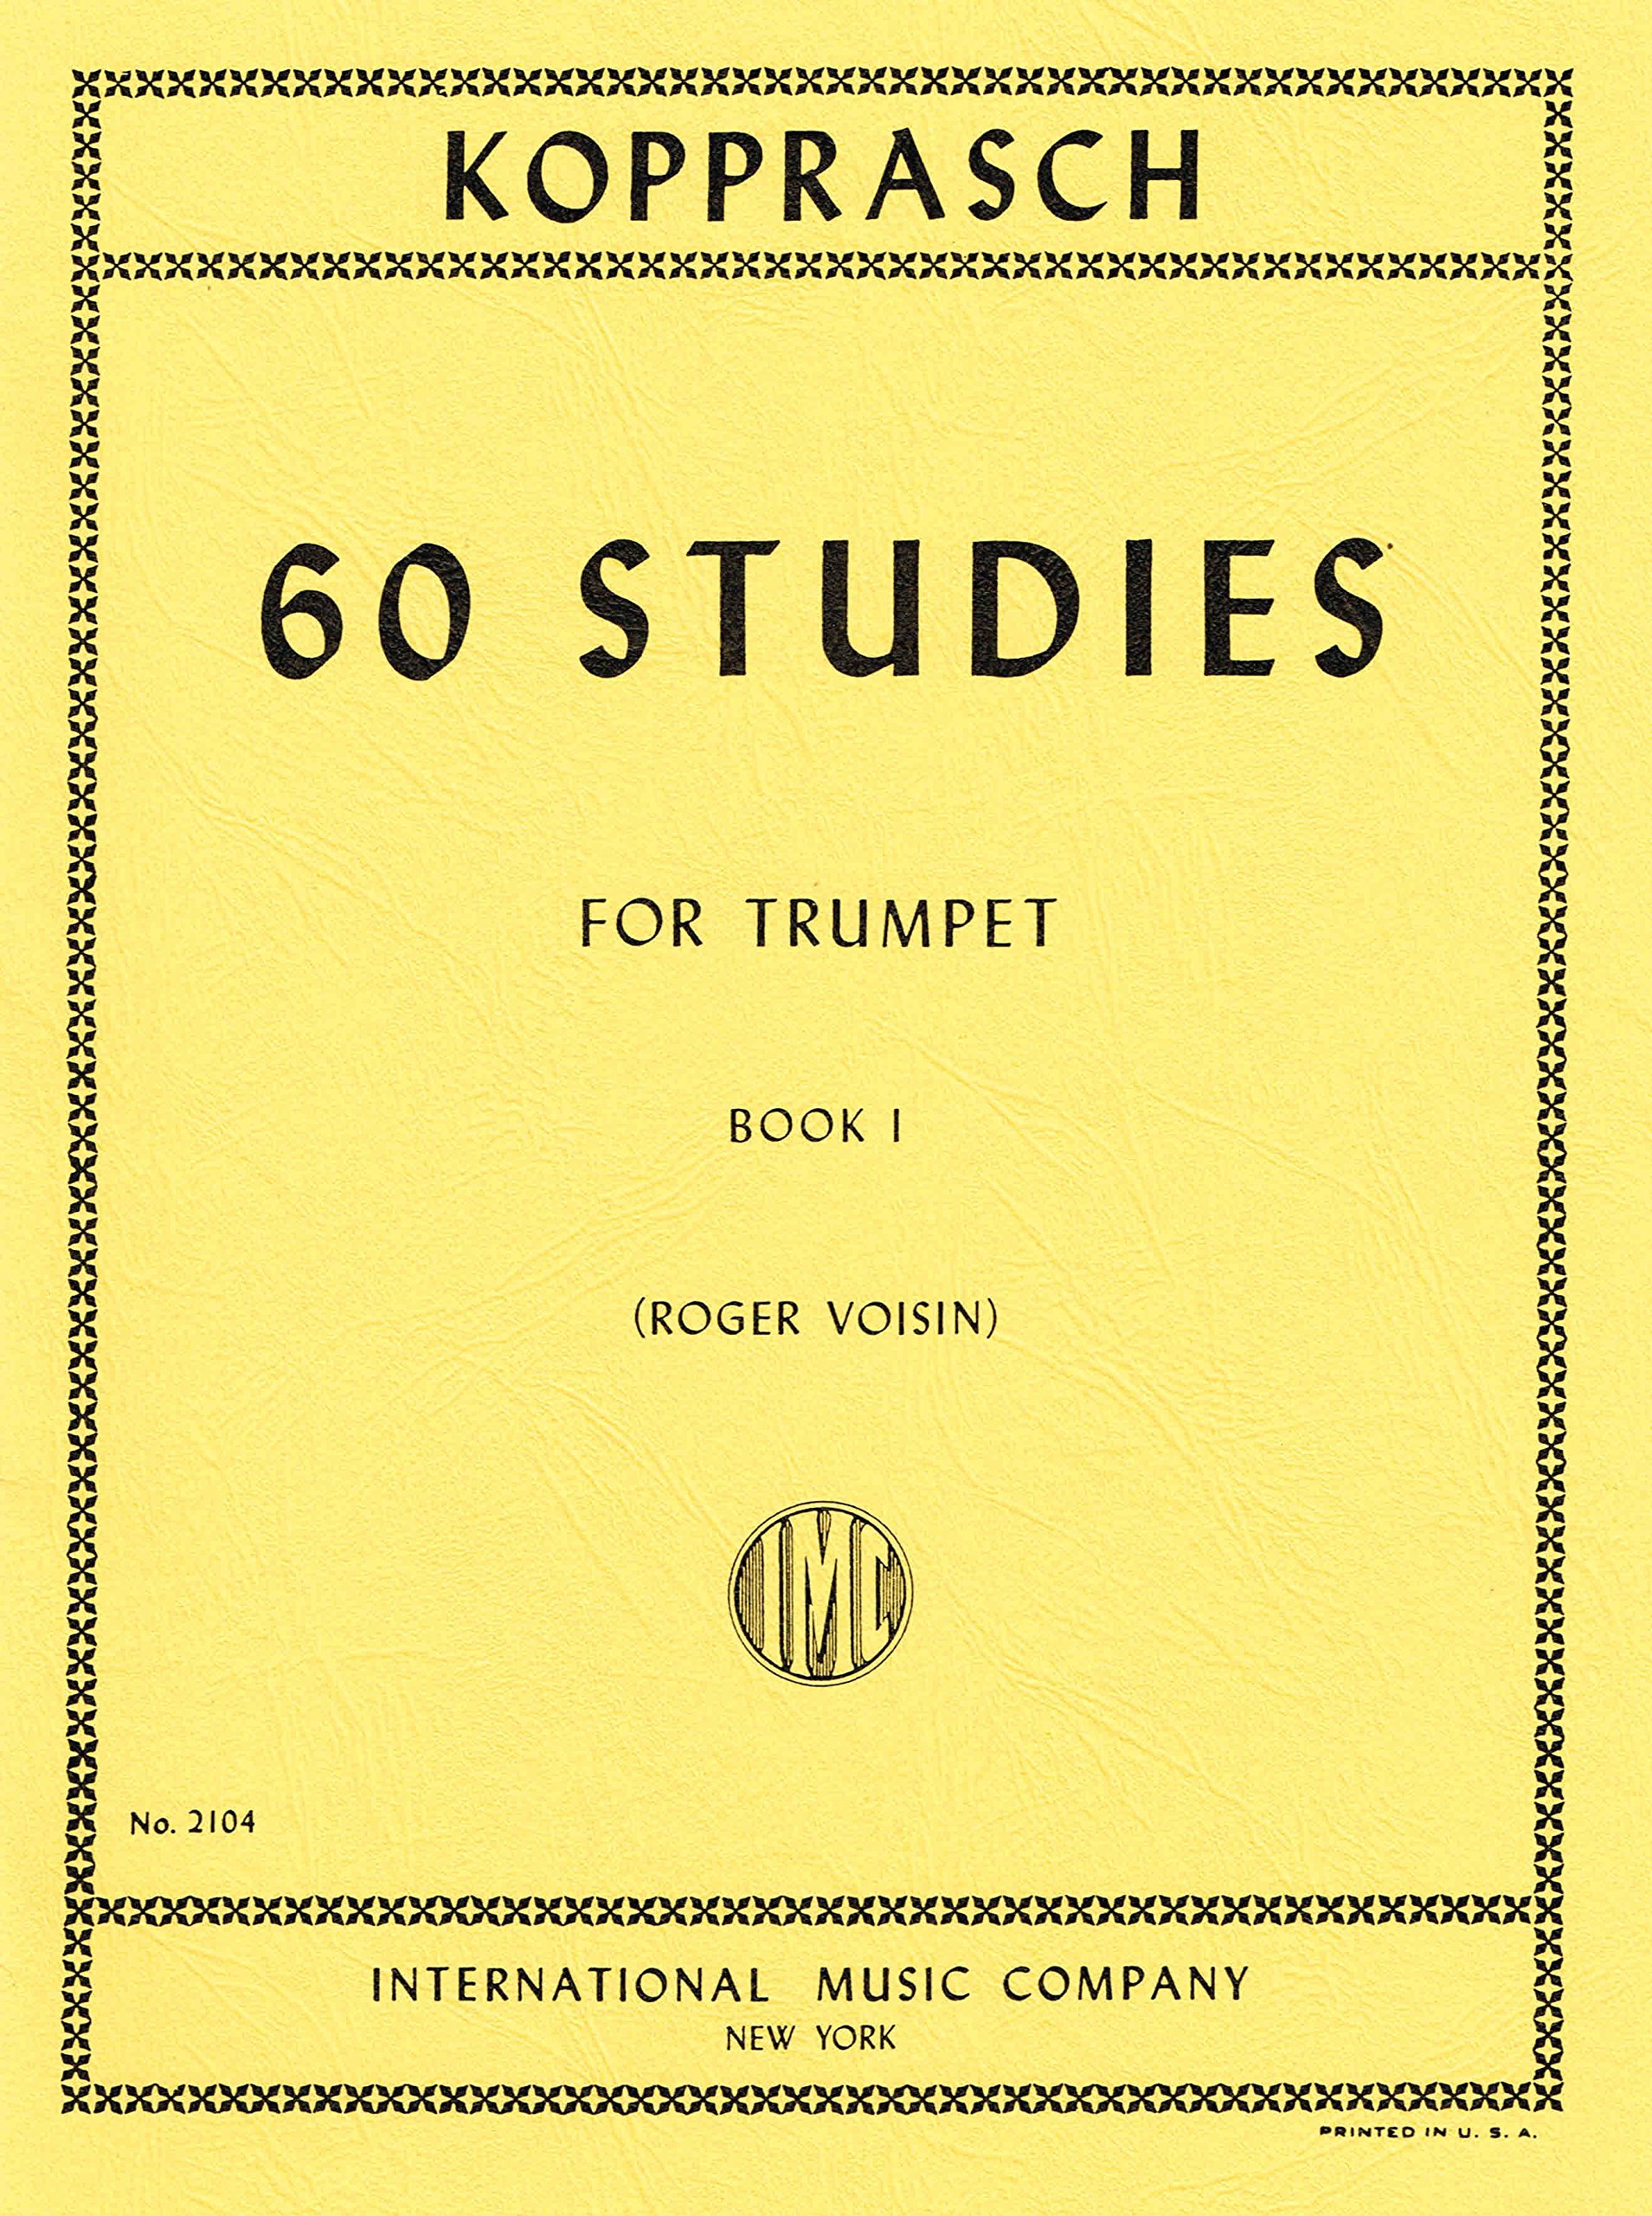 Book 1 Sixty Selected Studies for Trumpet